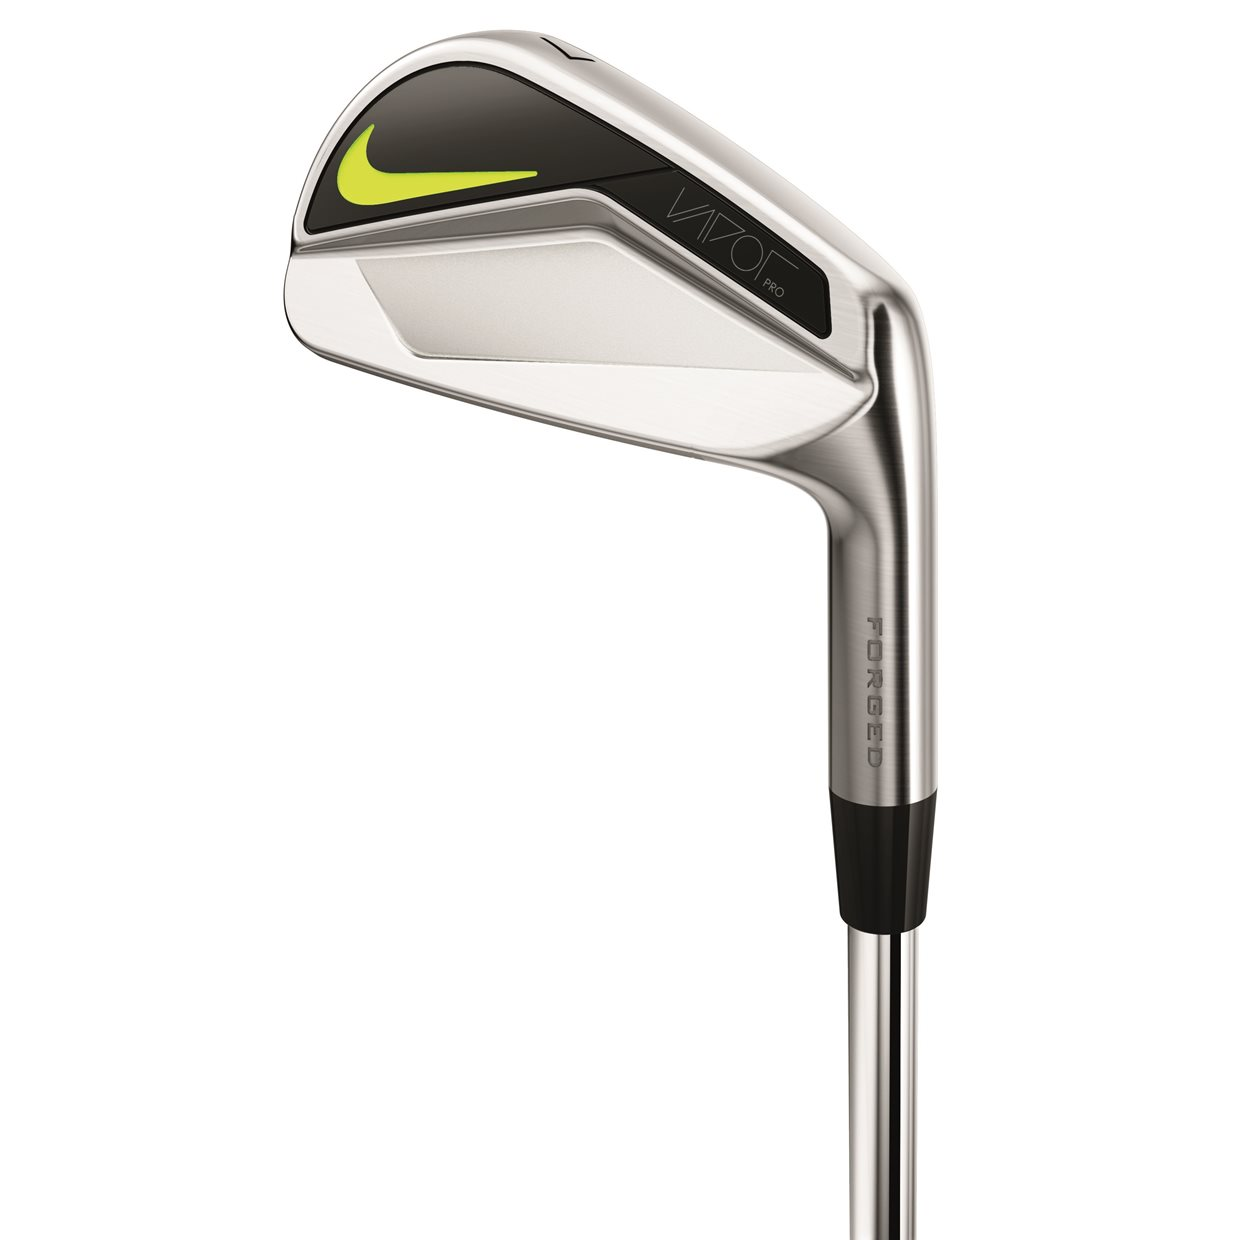 951d2acc391 Nike Vapor Pro Iron Set 4-PW Used Golf Club at GlobalGolf.com